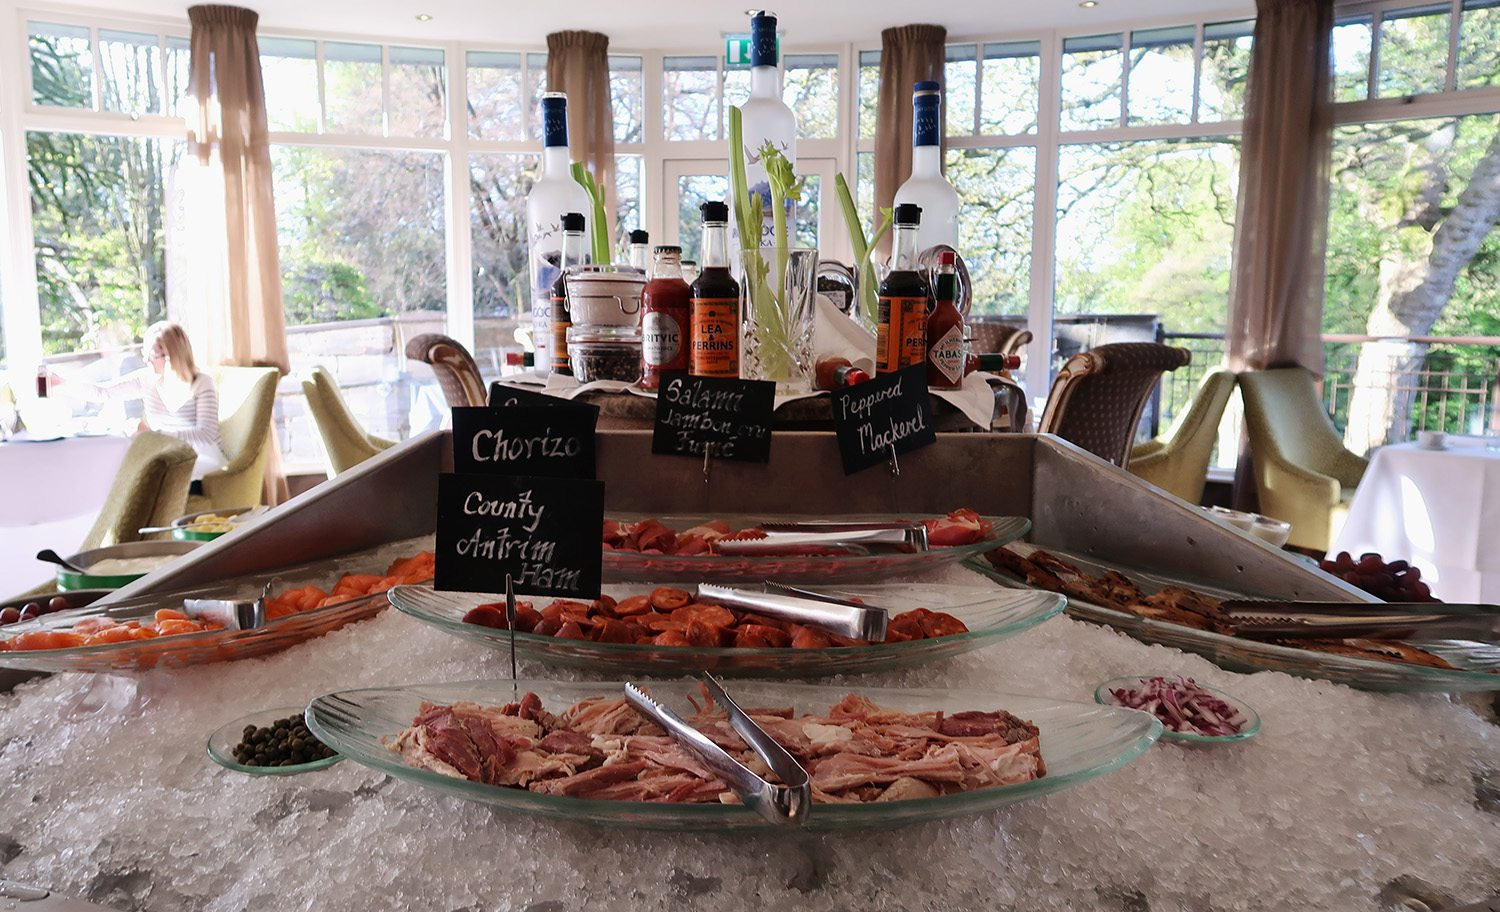 A large ice table with plates of meats and in the background are the bottles of ingredients to make a bloody mary